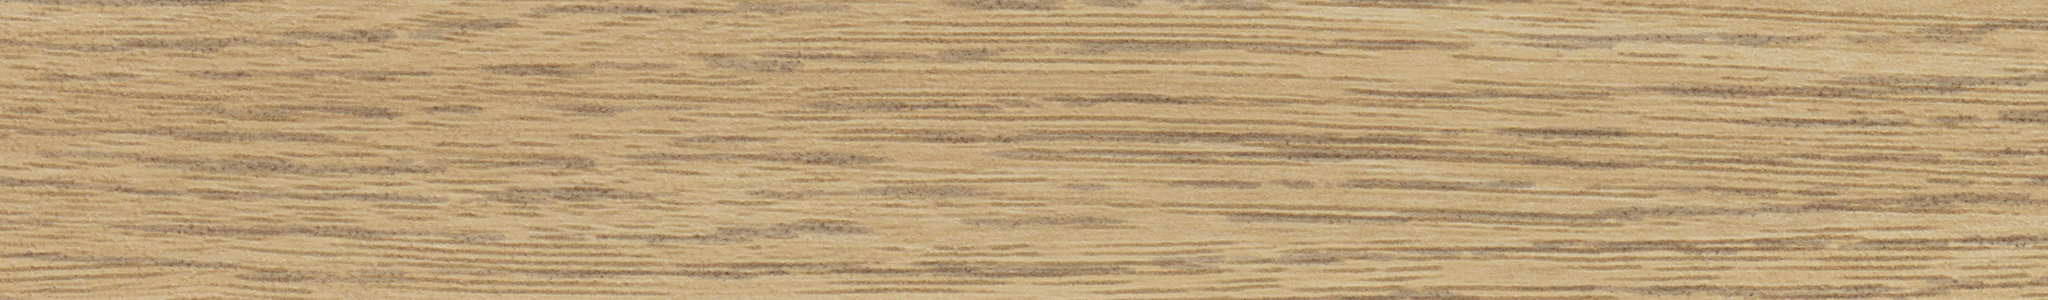 HD 24365 ABS Edge Evoke Oak Pearl